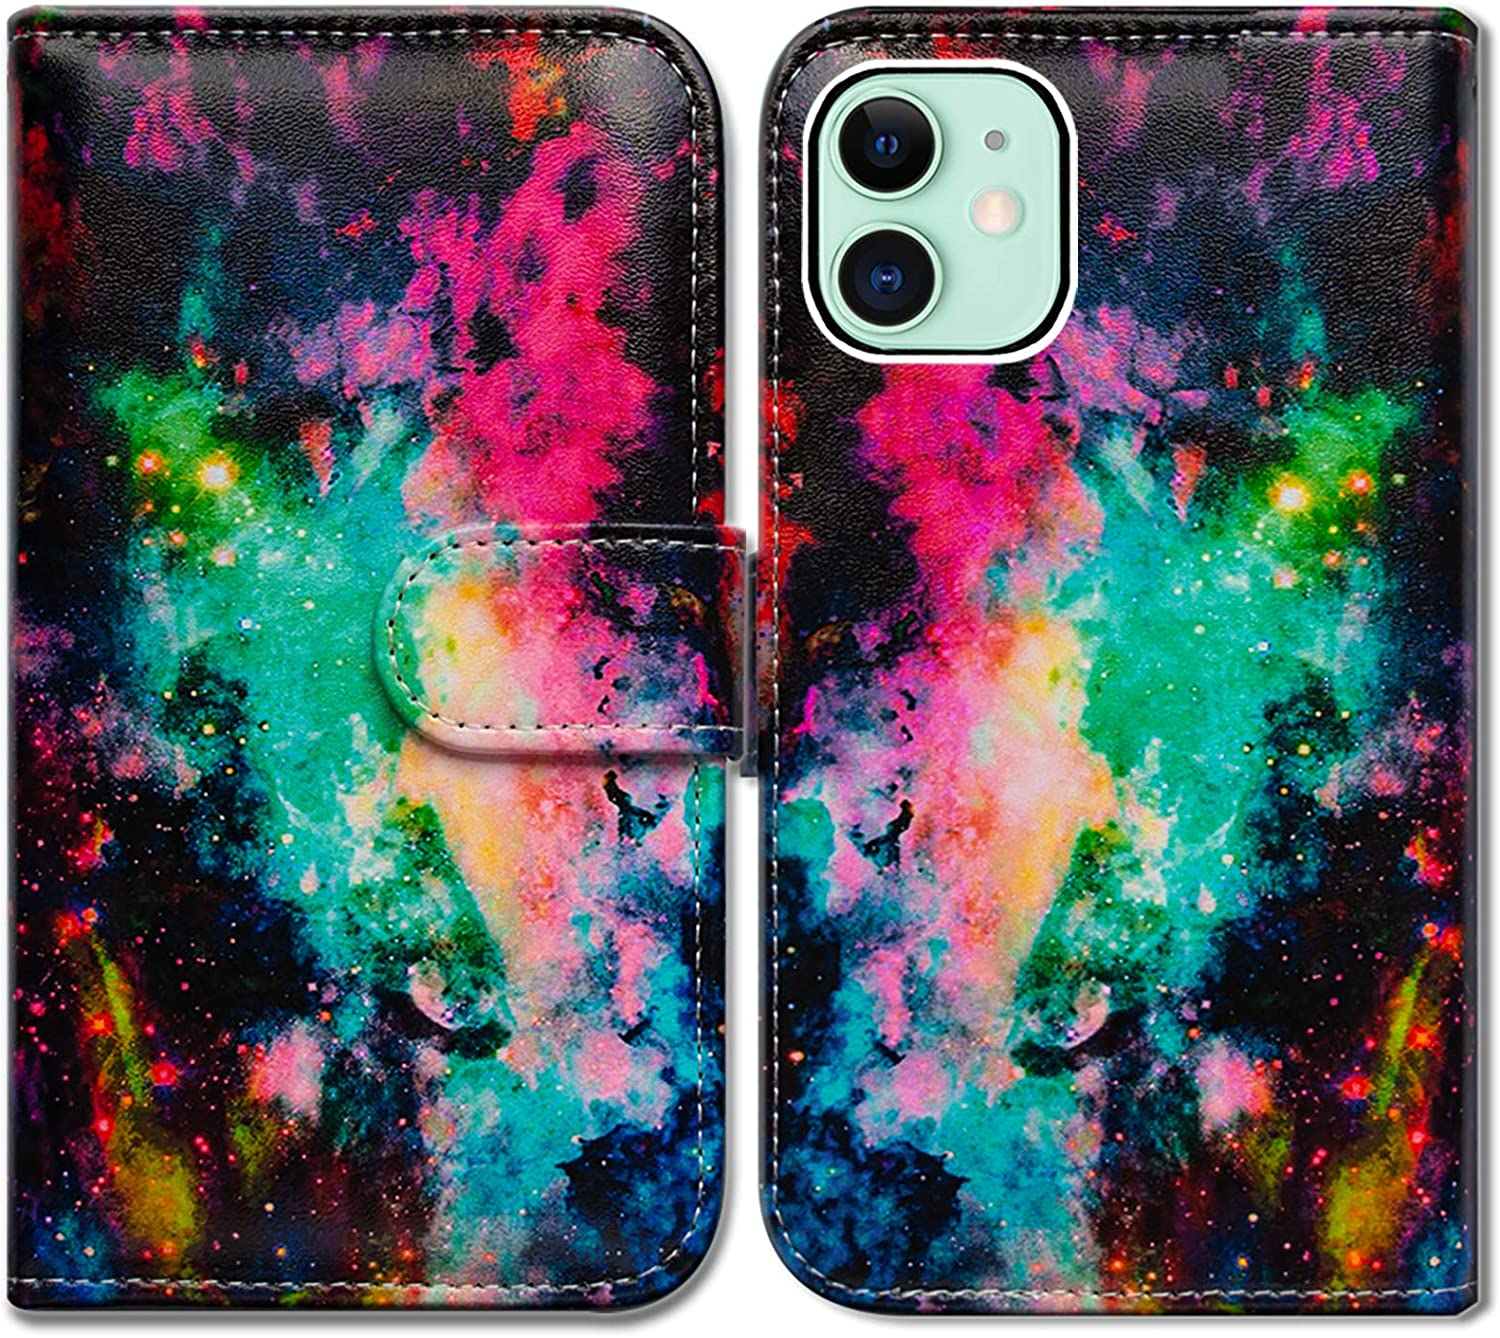 iPhone 12 Case,iPhone 12 Pro Case,Bcov Colorful Universe Sky Leather Flip Phone Case Wallet Cover with Card Slot Holder Kickstand for iPhone 12/iPhone 12 Pro